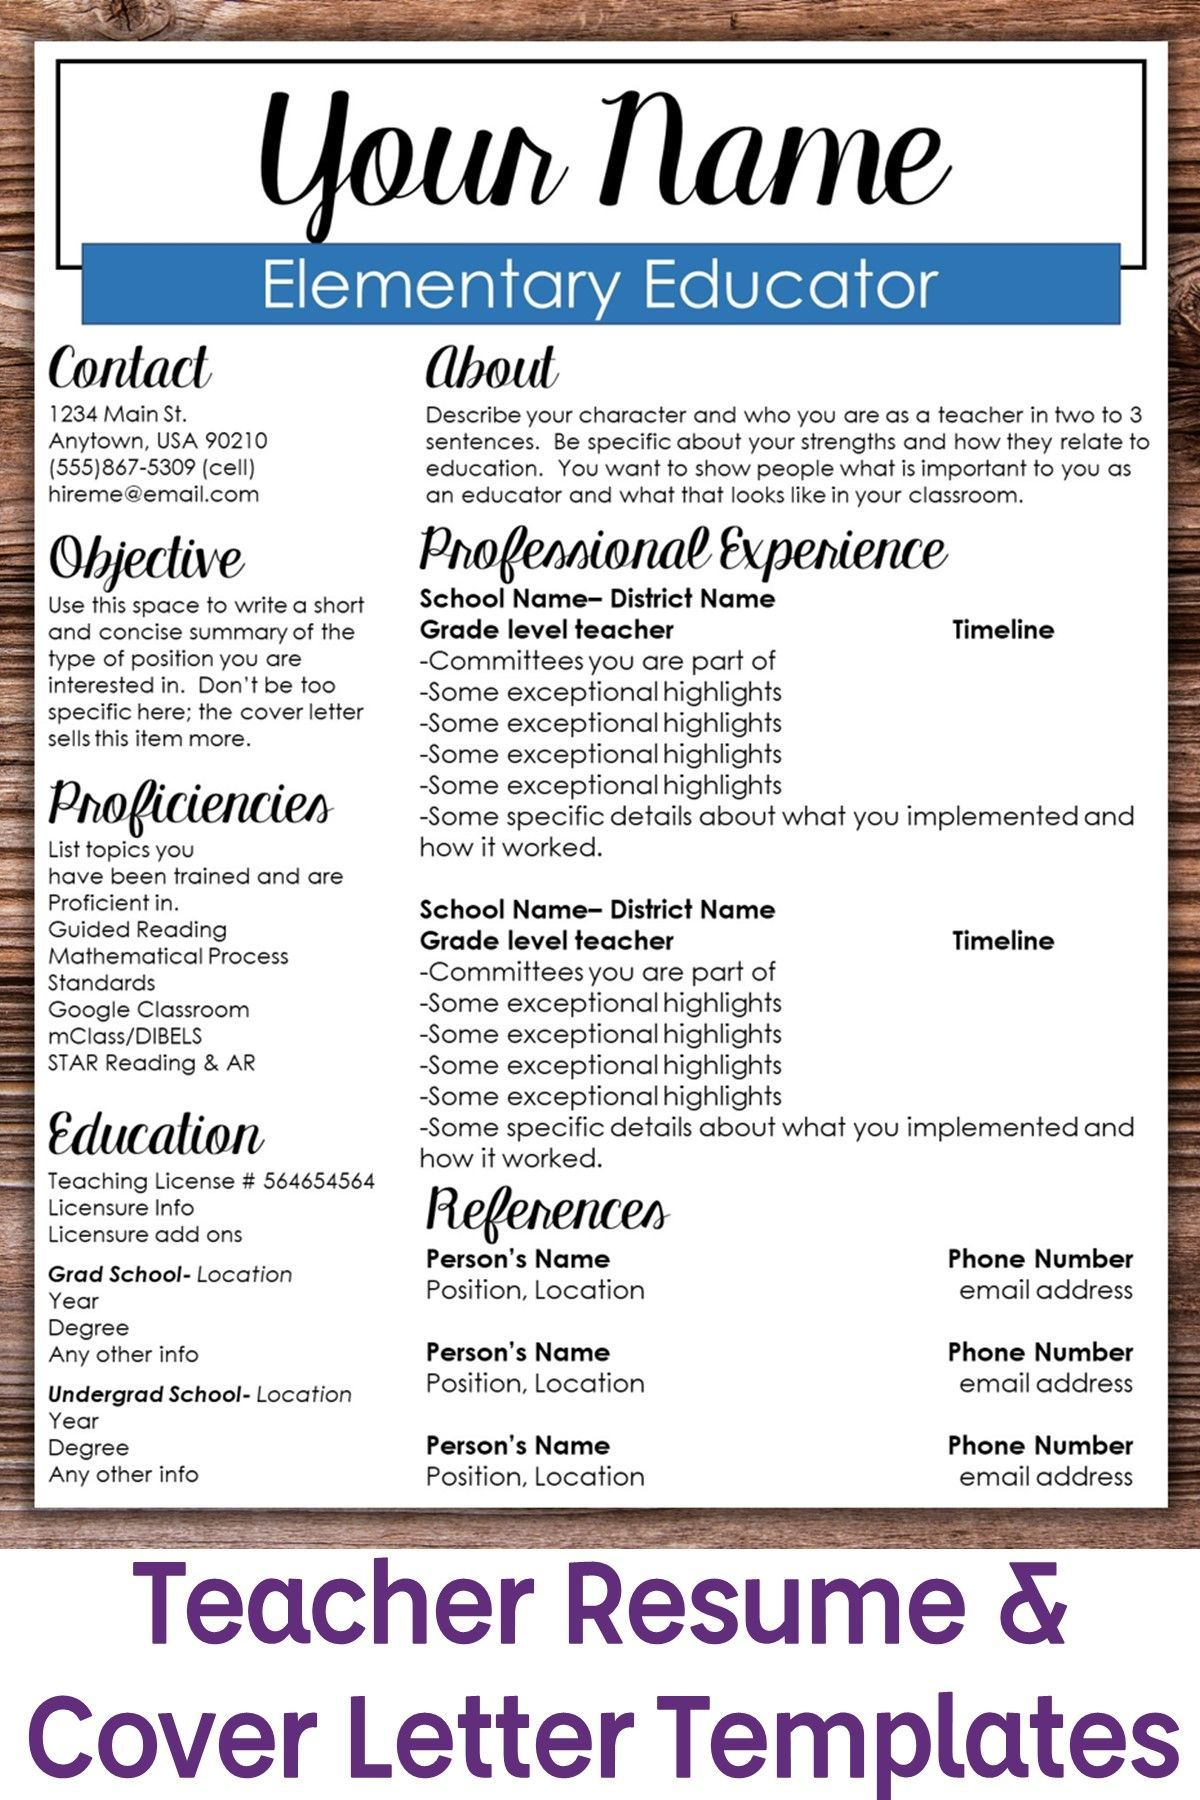 editable teacher resume template boxed student customize for each position office manager Resume Customize Resume For Each Position